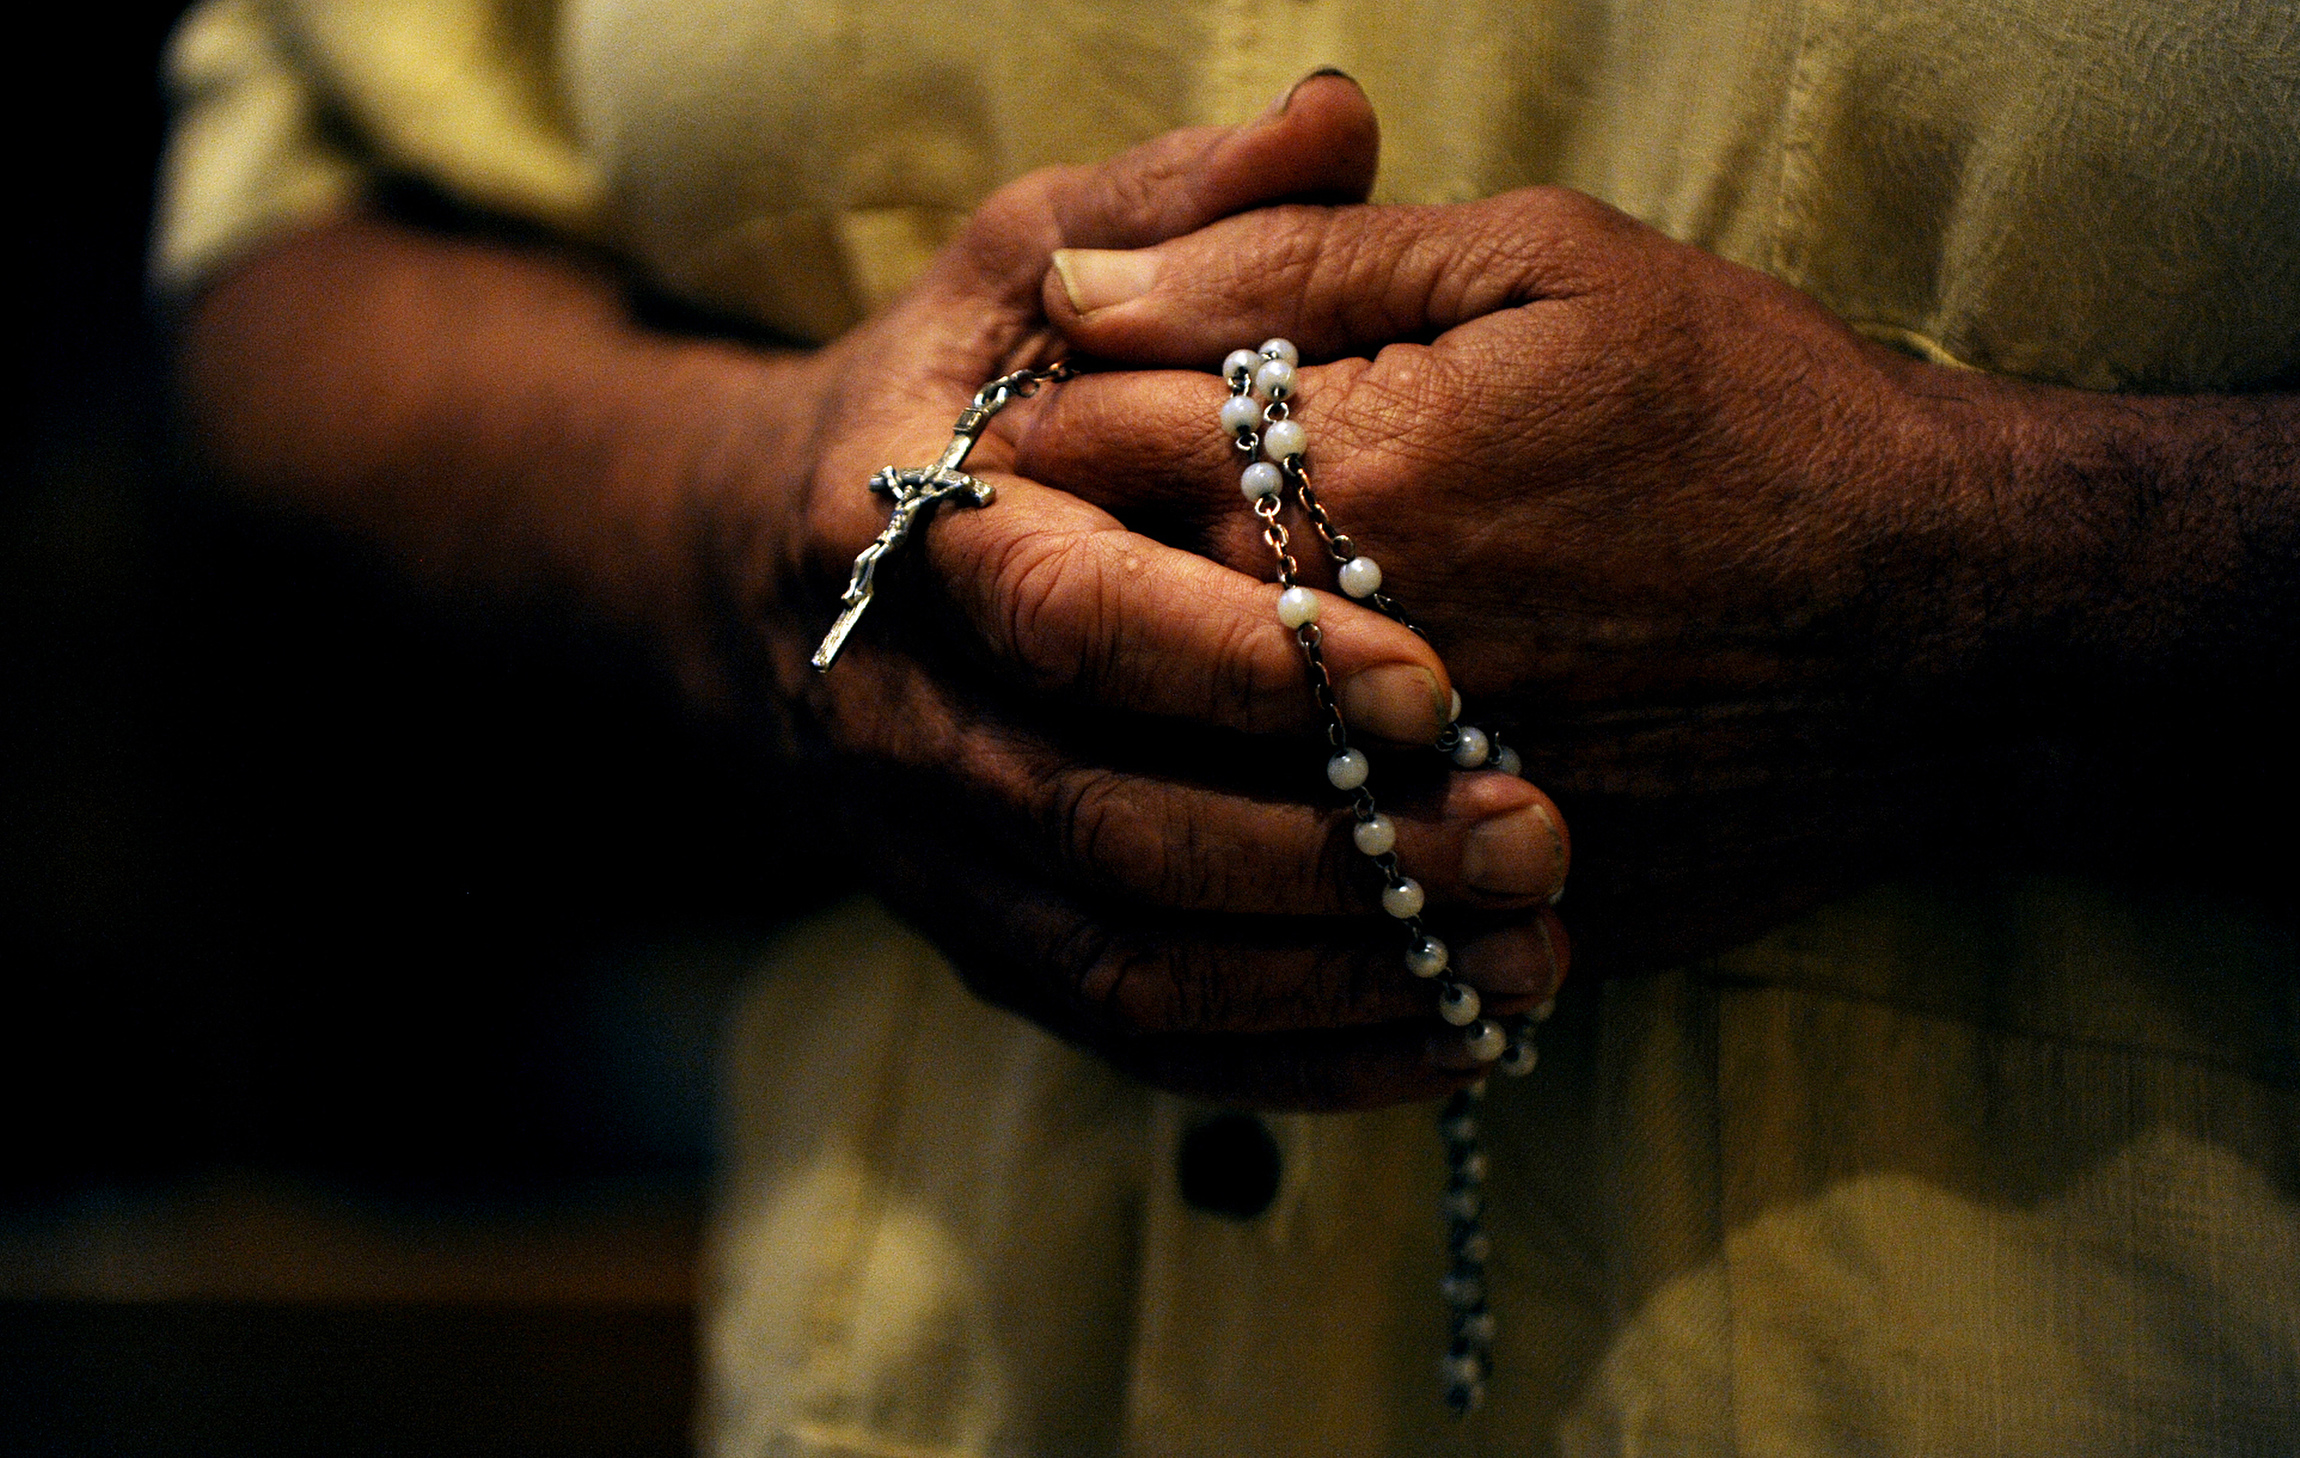 October is the month the church dedicates to the rosary. The church synod the new evangelization begins Oct. 7, the feast of Our Lady of the Rosary. (CNS file photo/Mike Crupi, Catholic Courier) (Sept. 28, 2012) See OCTOBER-ROSARY Sept. 28, 2012.